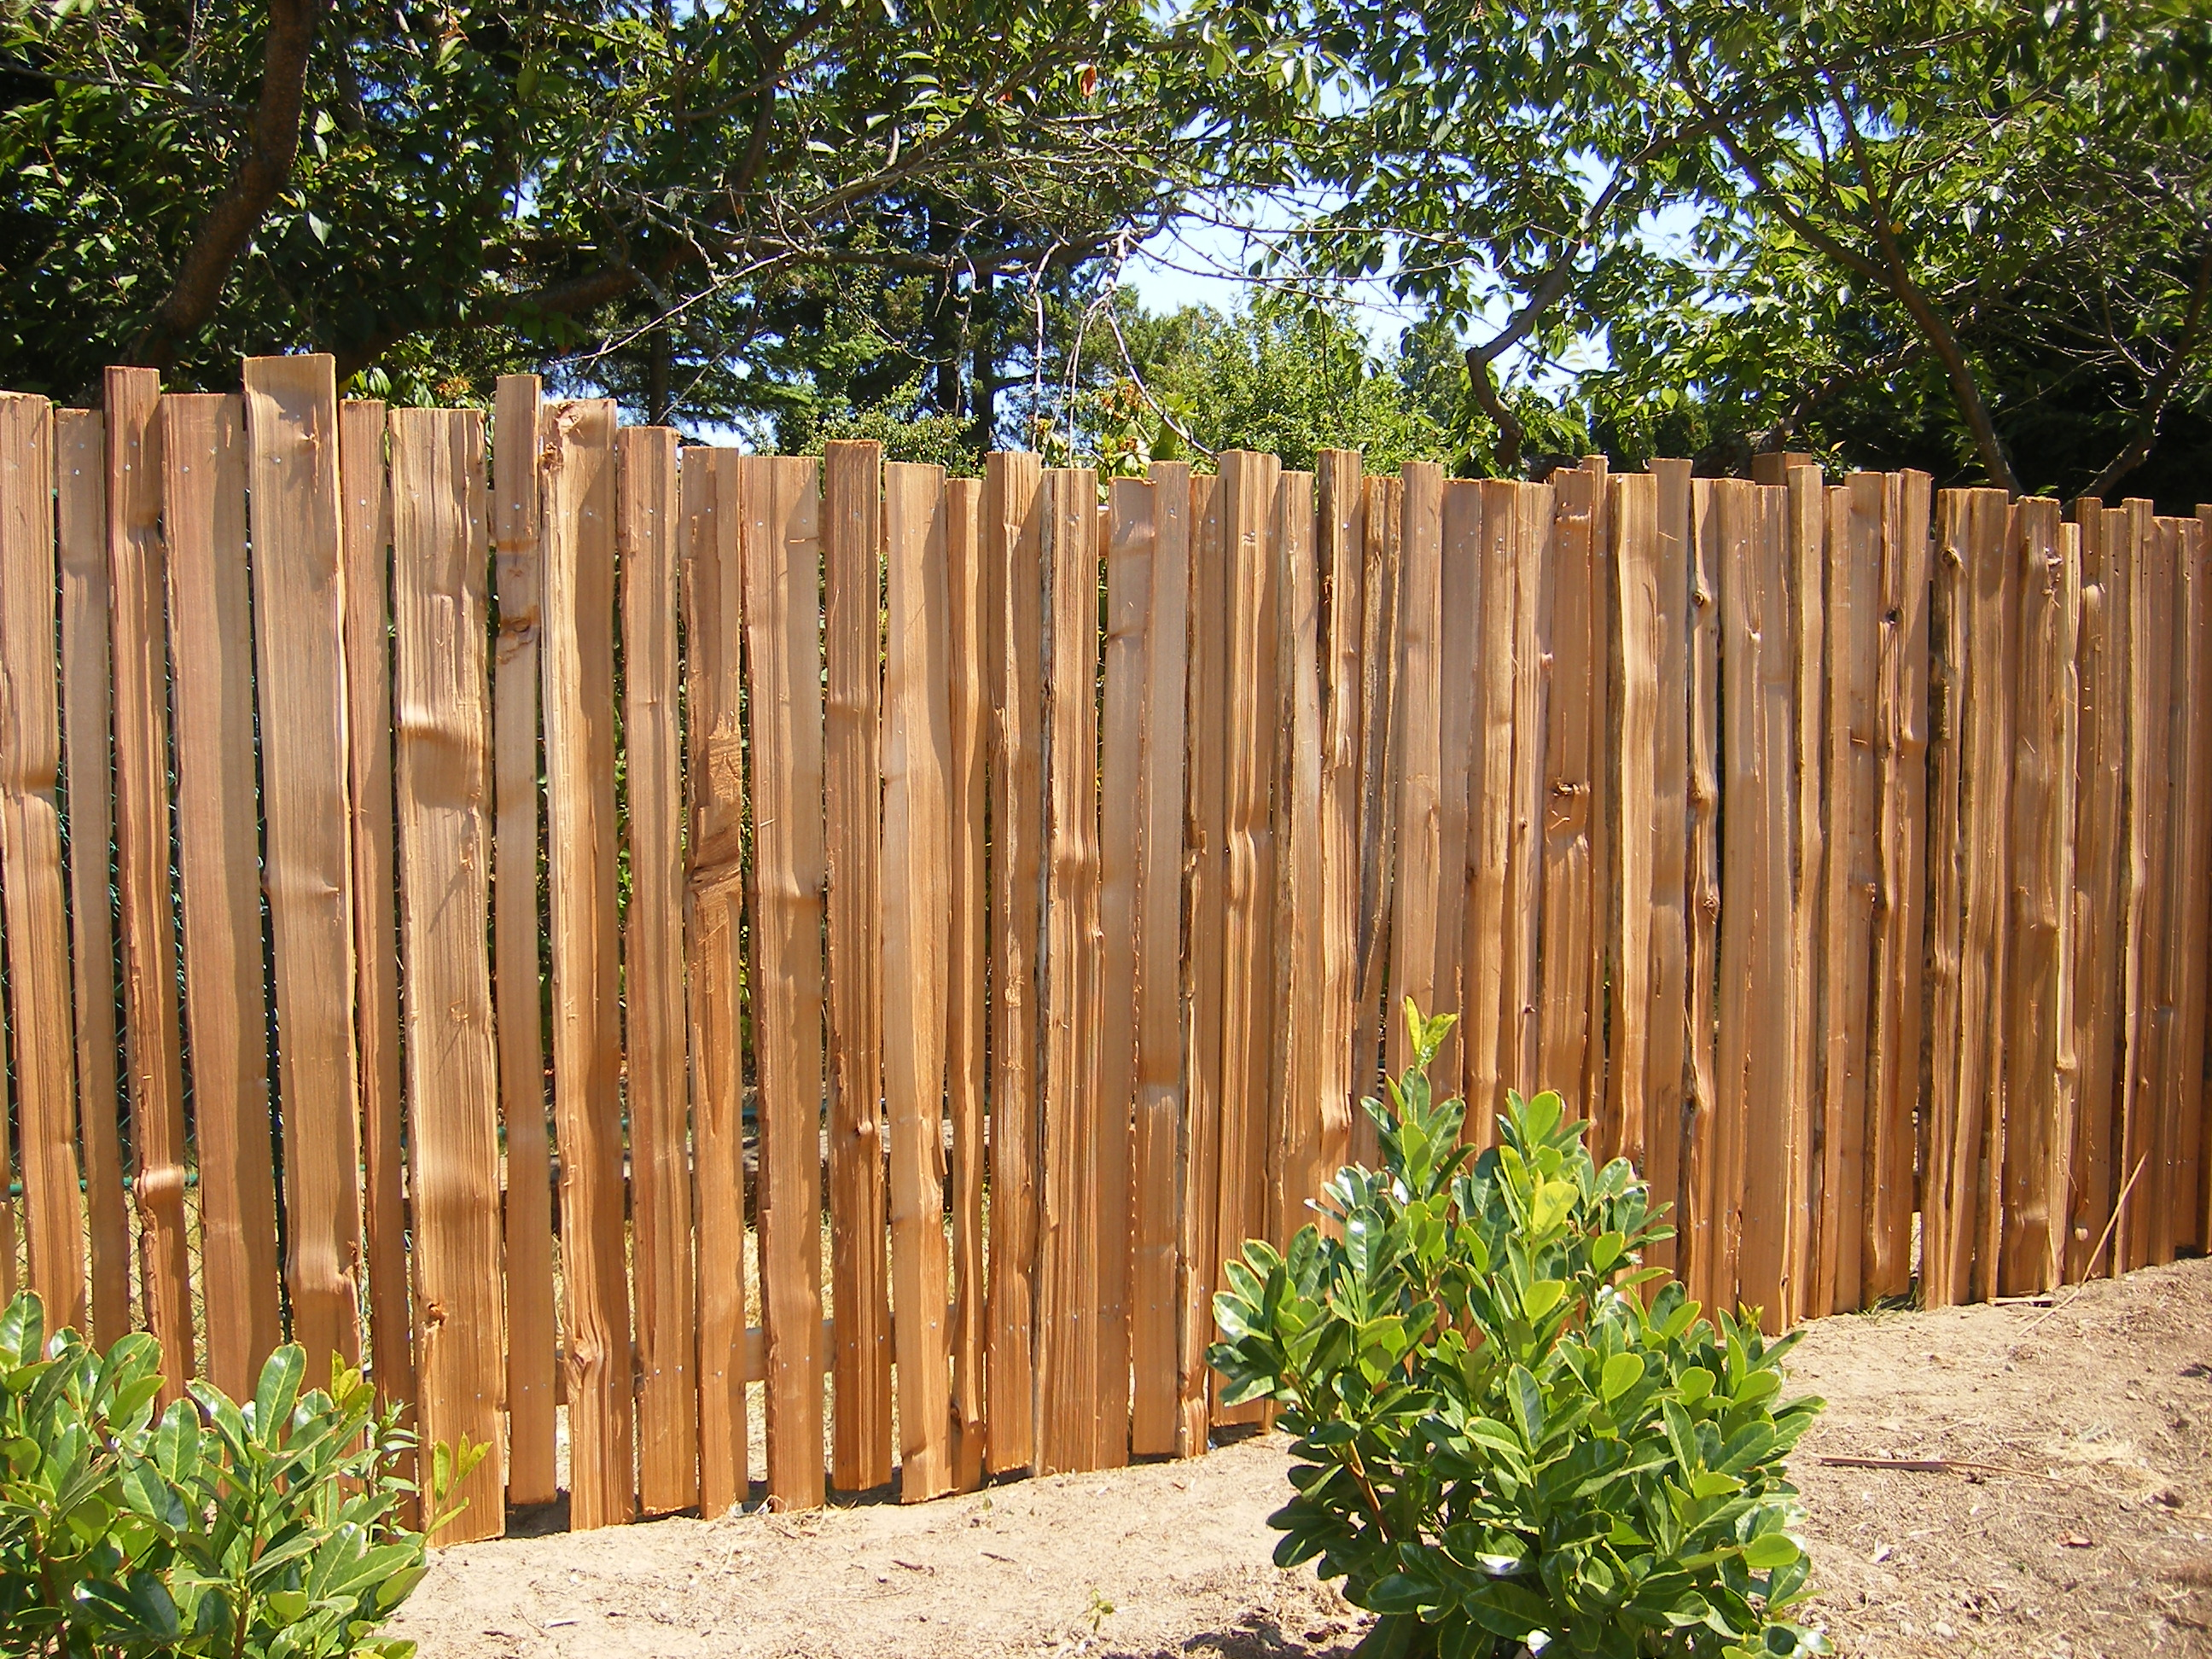 Dimished art of hand spitting grapestake fencing fence for Banca de madera para jardin